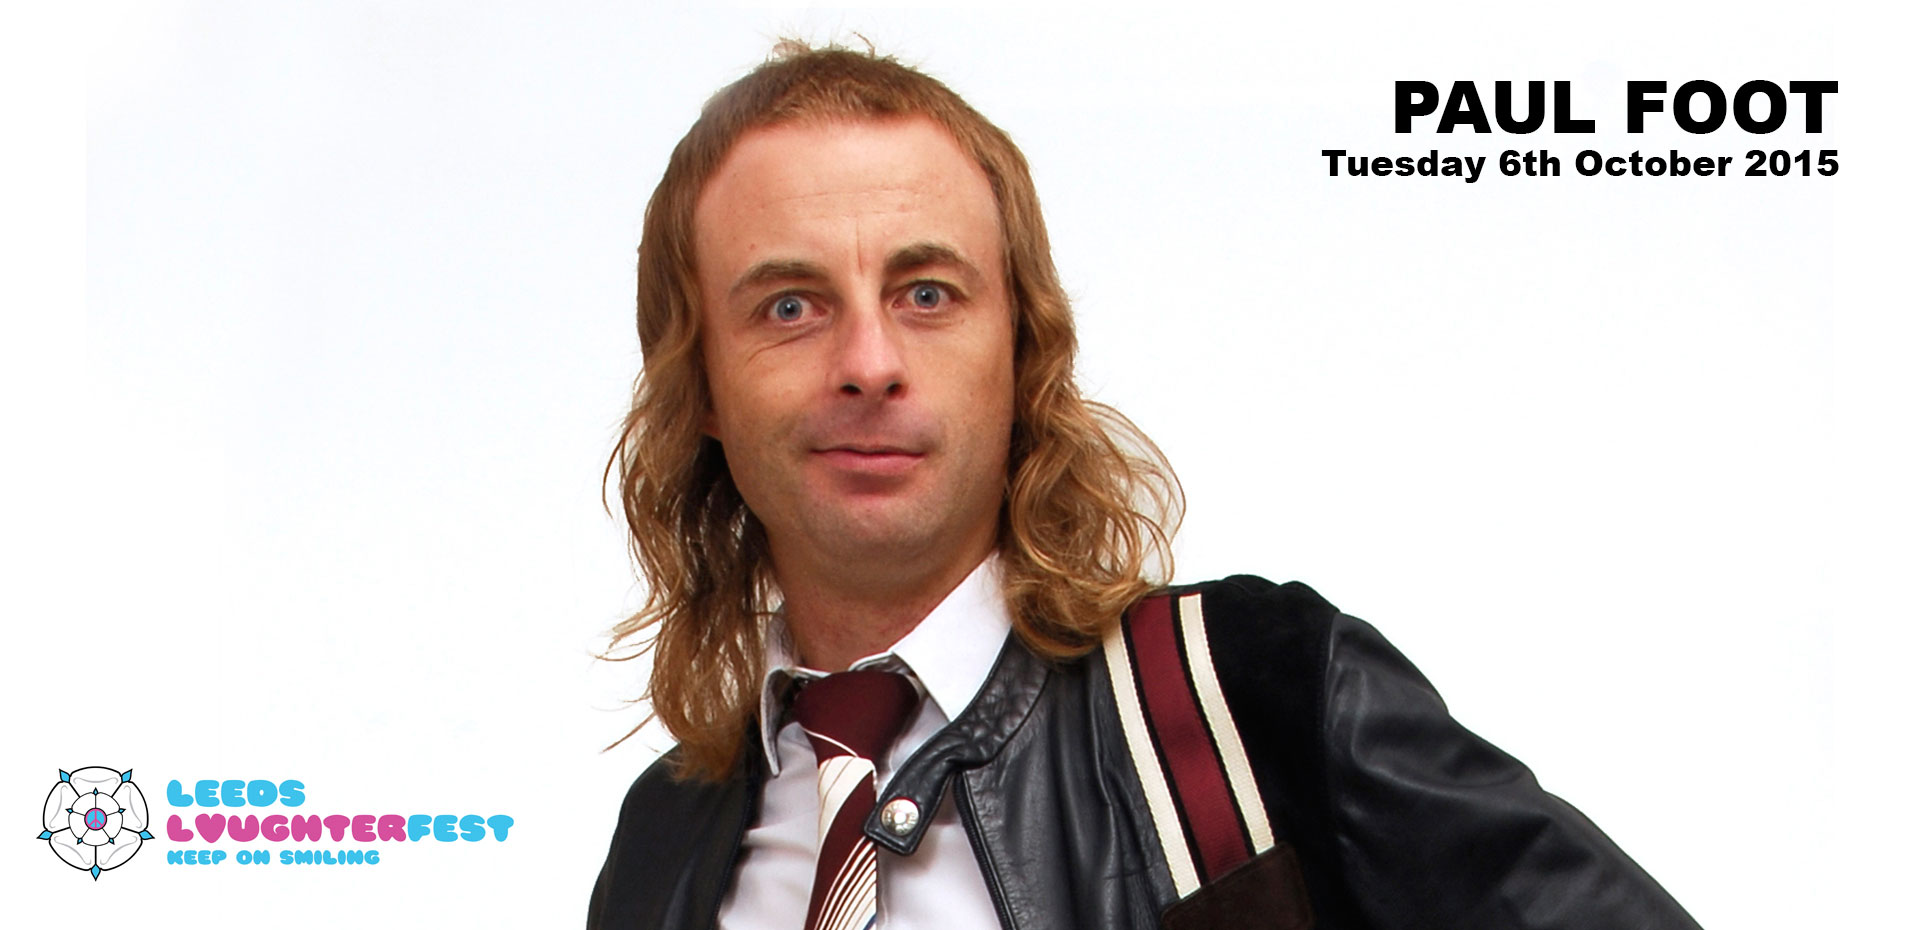 PAUL FOOT Tuesday 6th October 2015